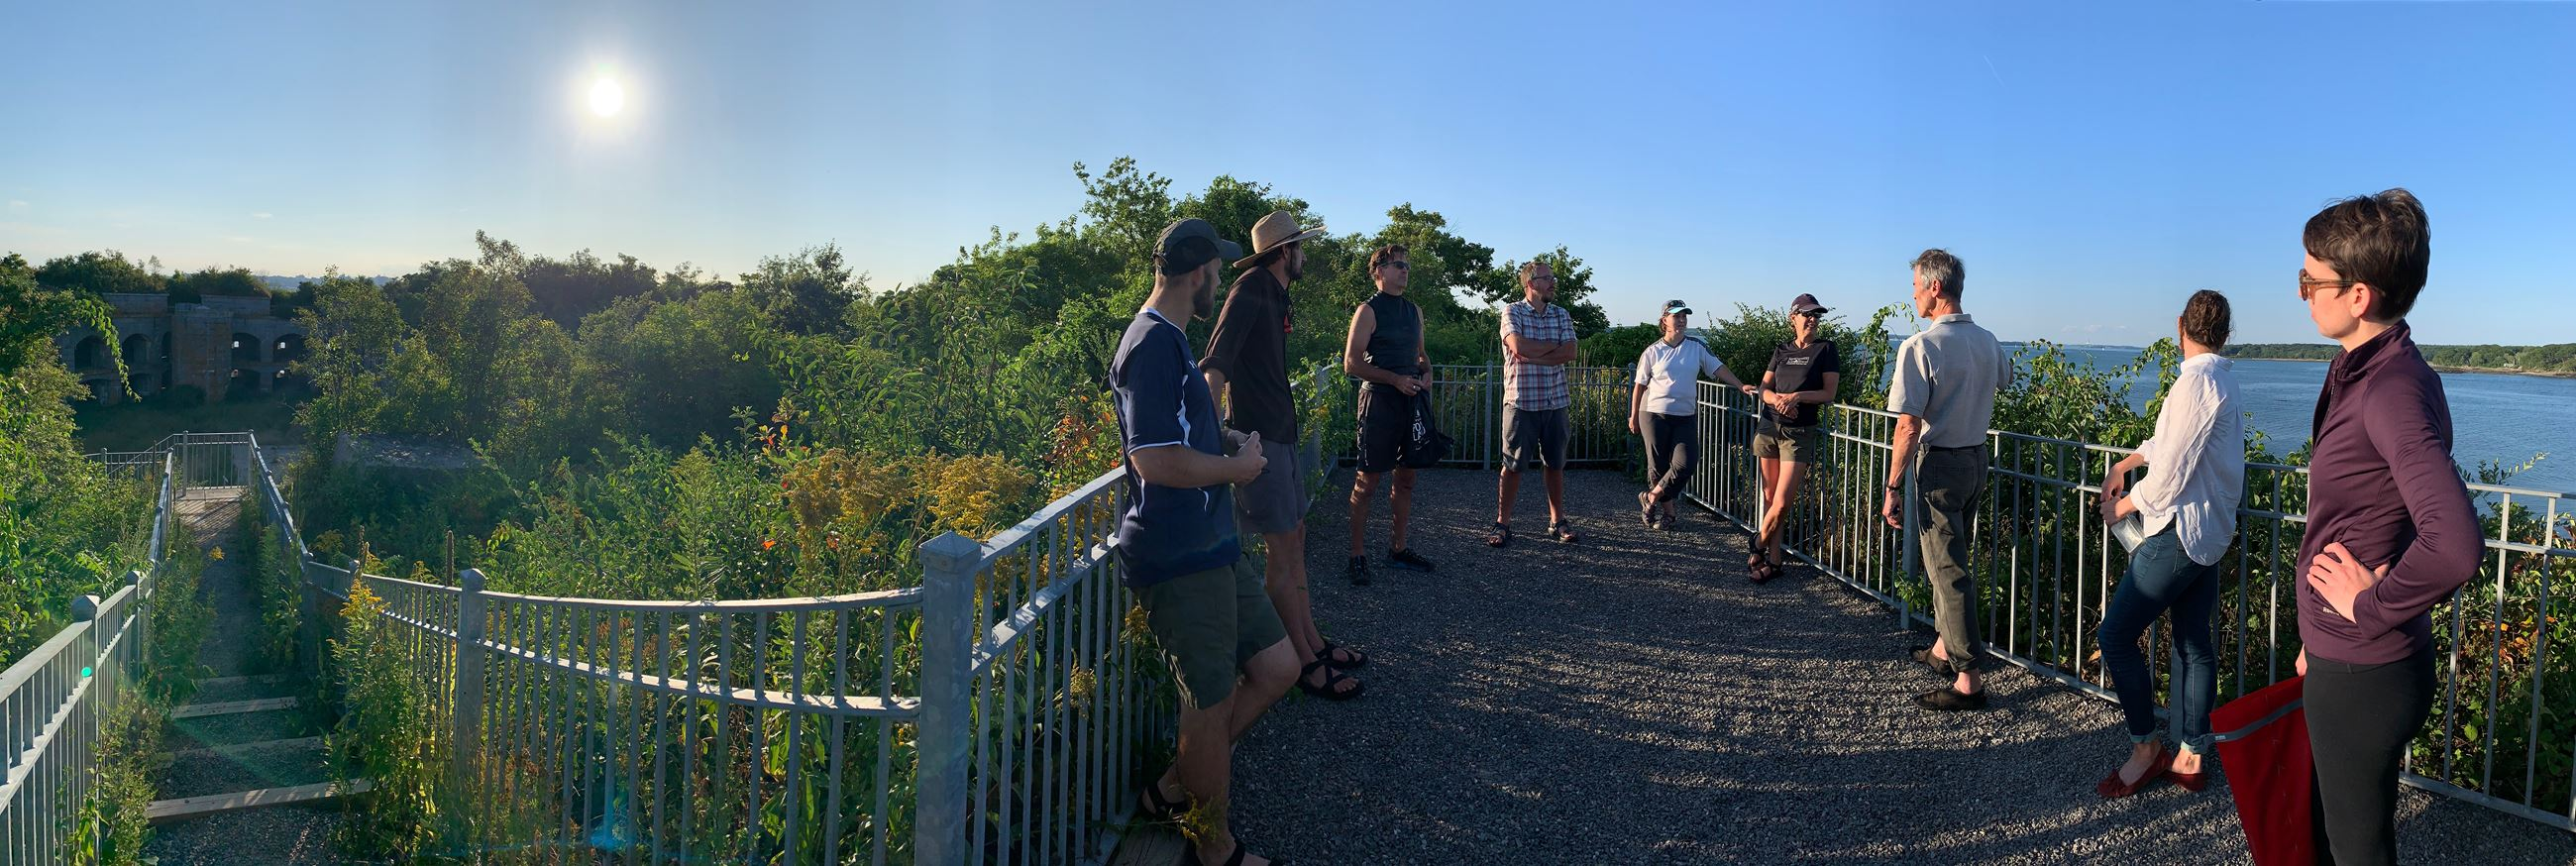 Parks Commission Ft Gorges Trip 2019